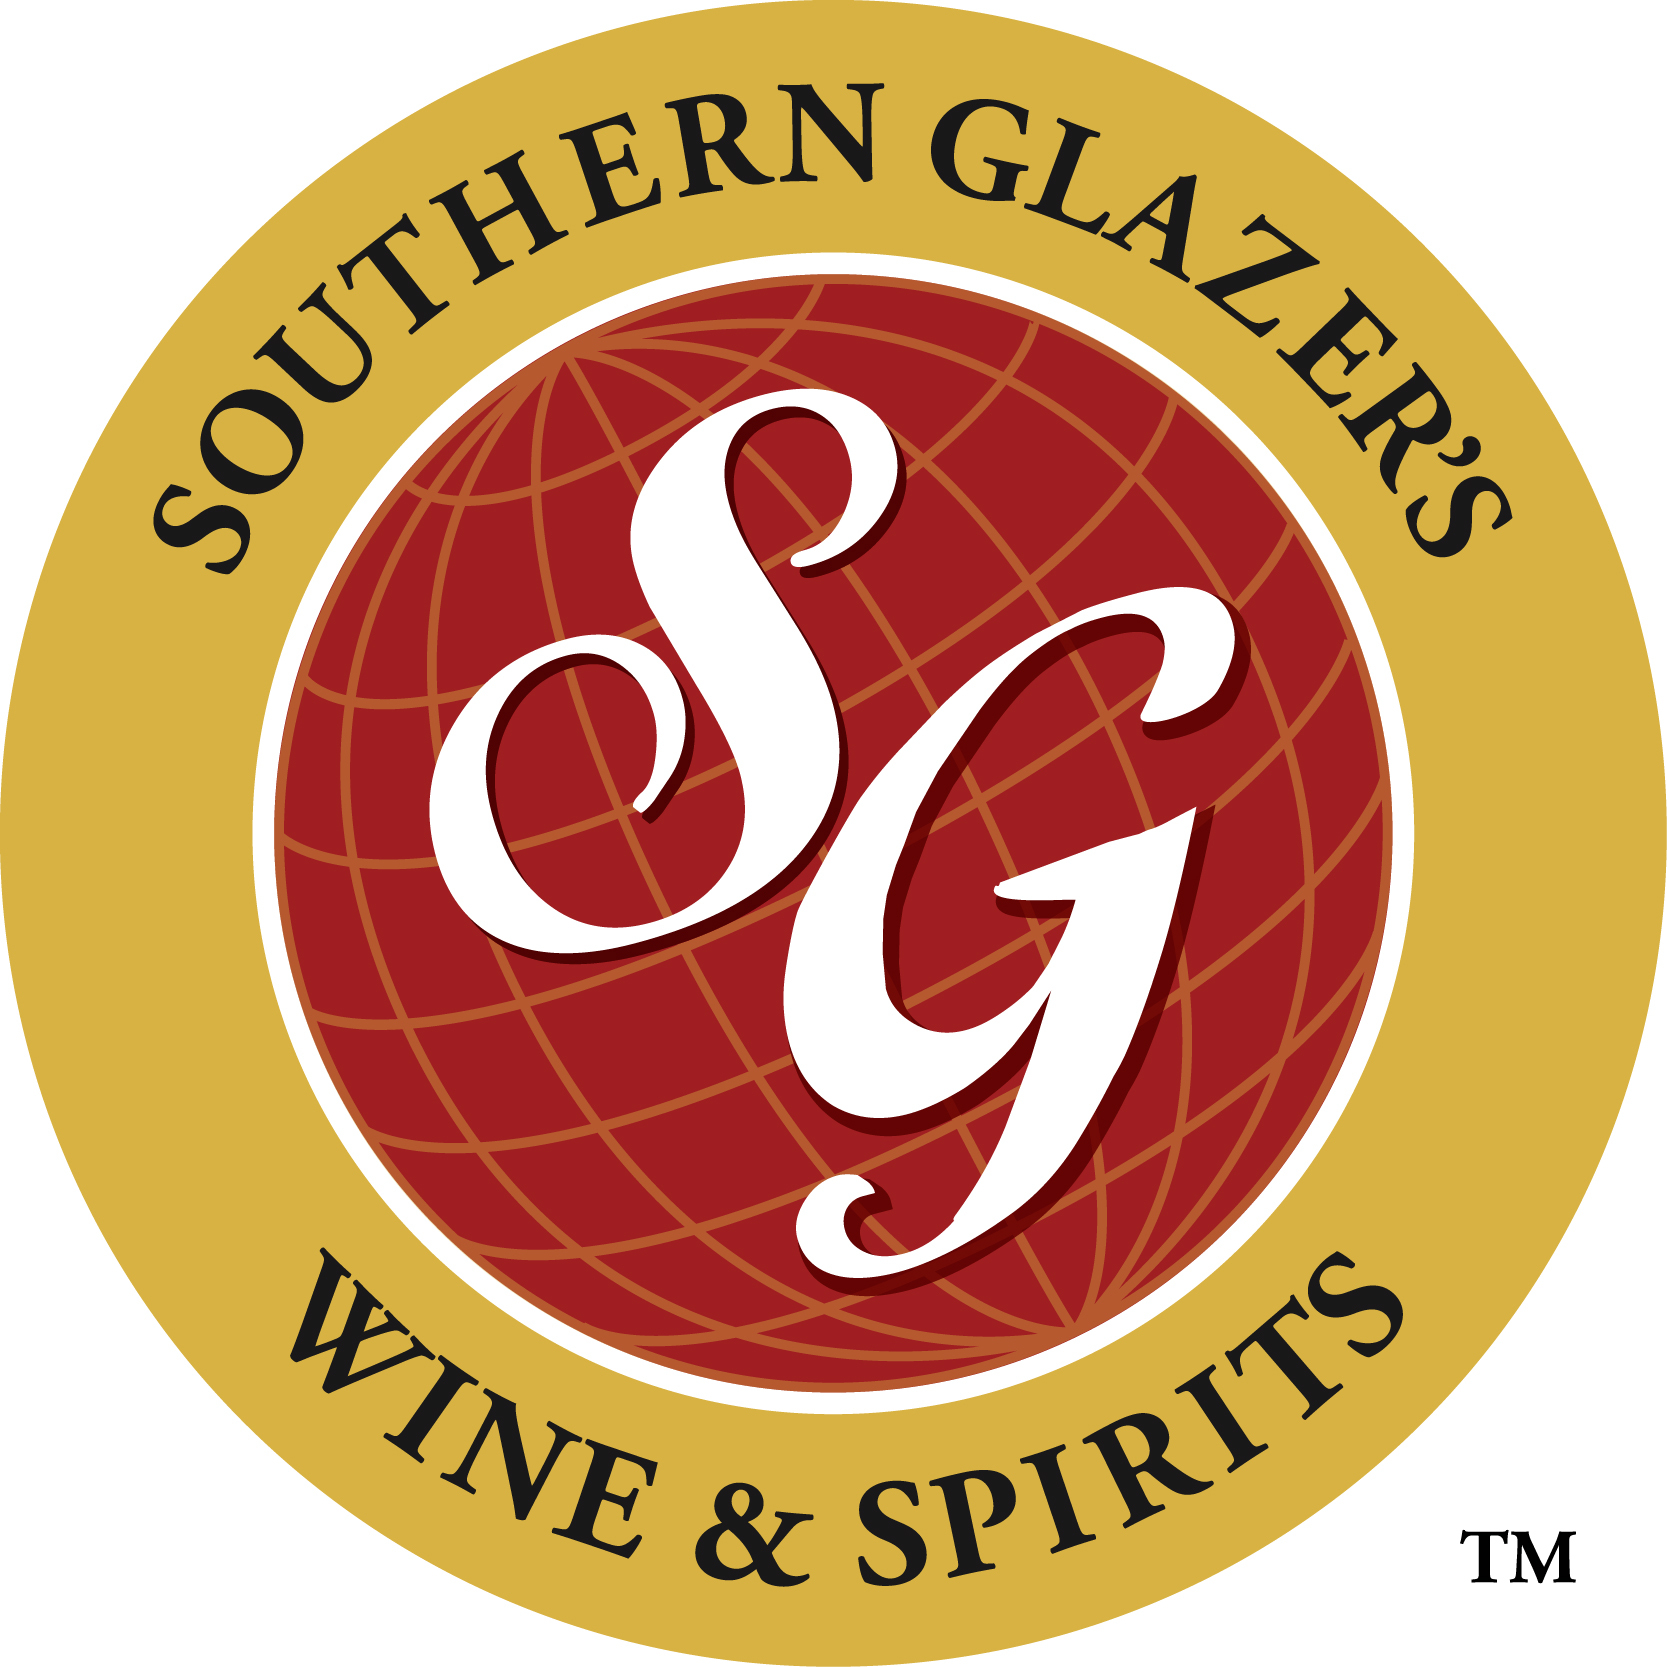 Southern Glazer's Wine & Spirits Launches Company-wide